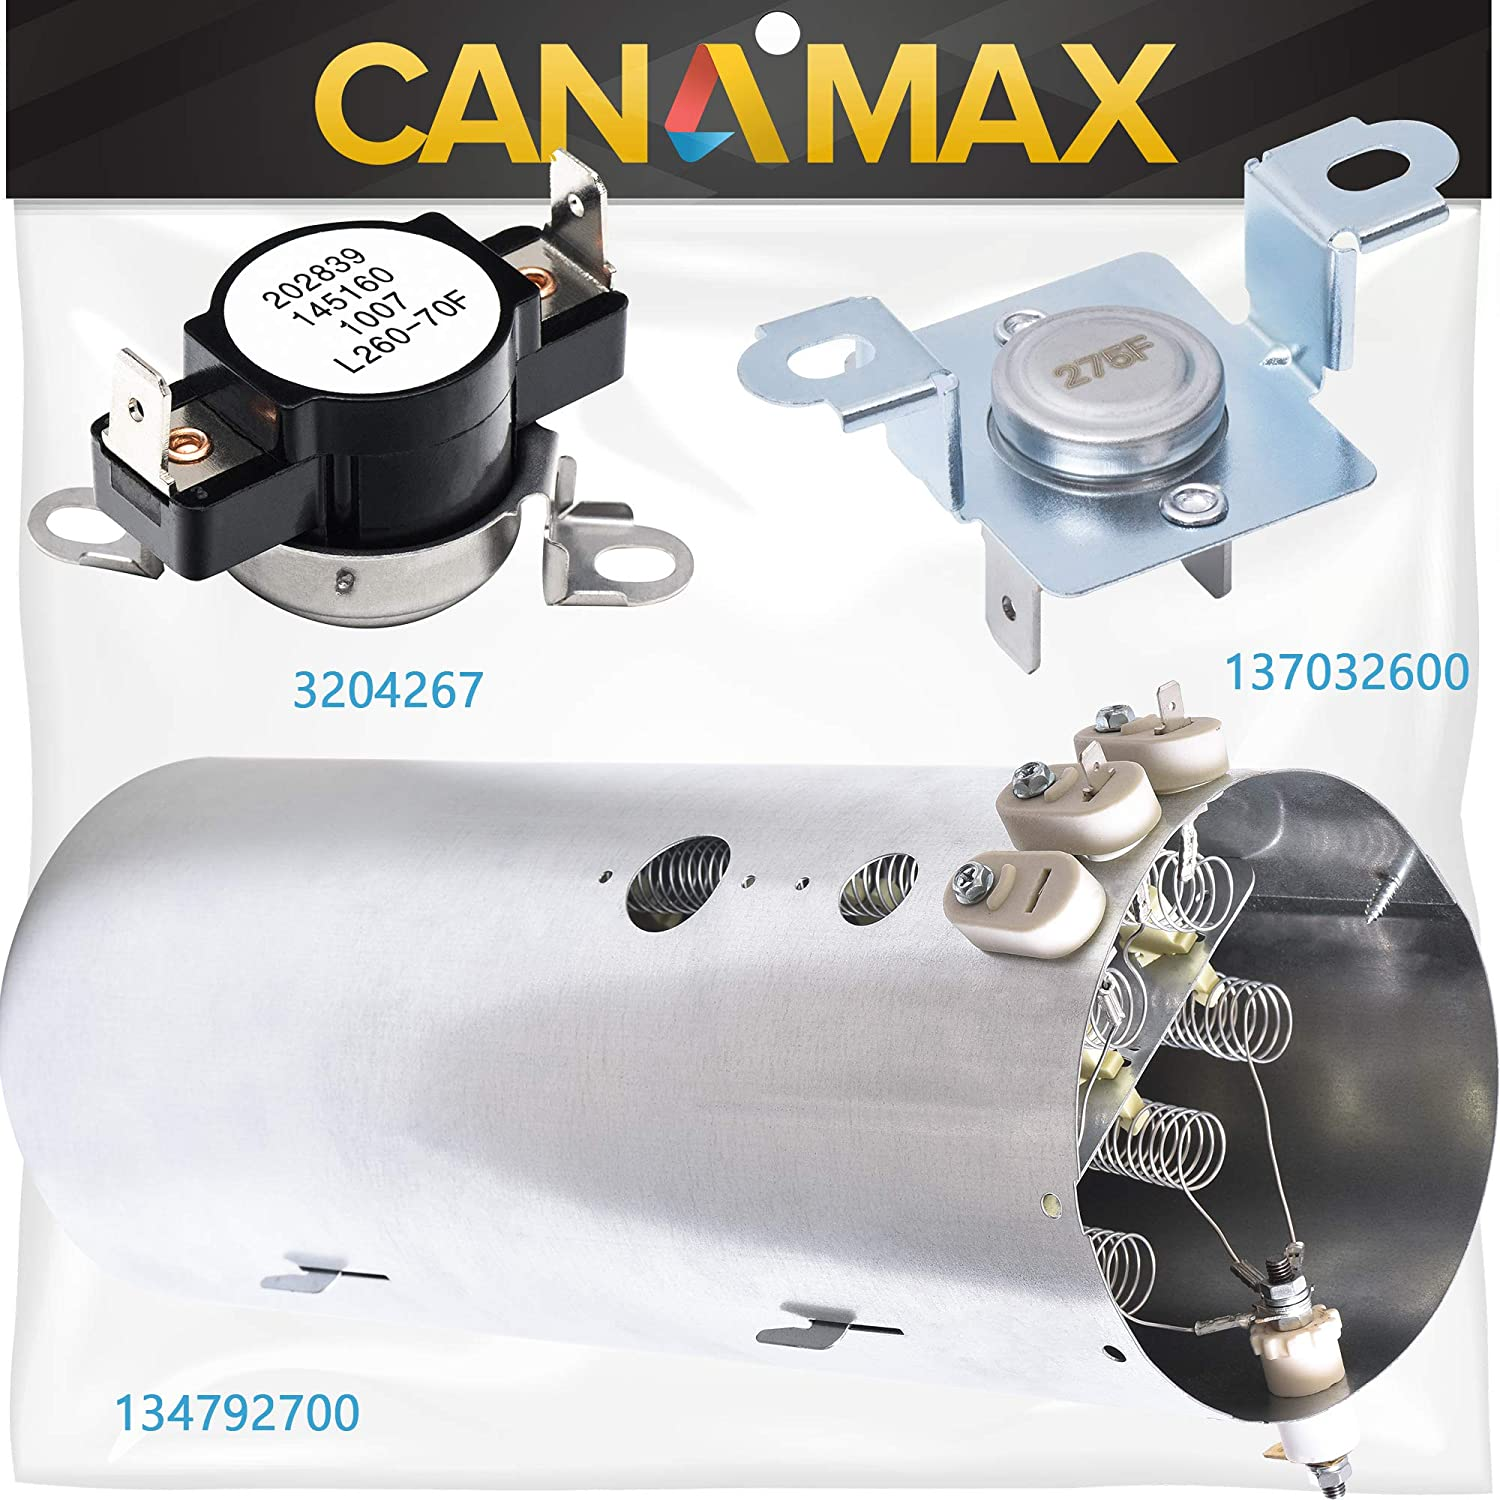 134792700 Dryer Heating Element & 137032600 Thermal Limiter & 3204267 Thermostat Kit Premium Replacements by Canamax - Compatible with Electrolux, Frigidaire Dryers